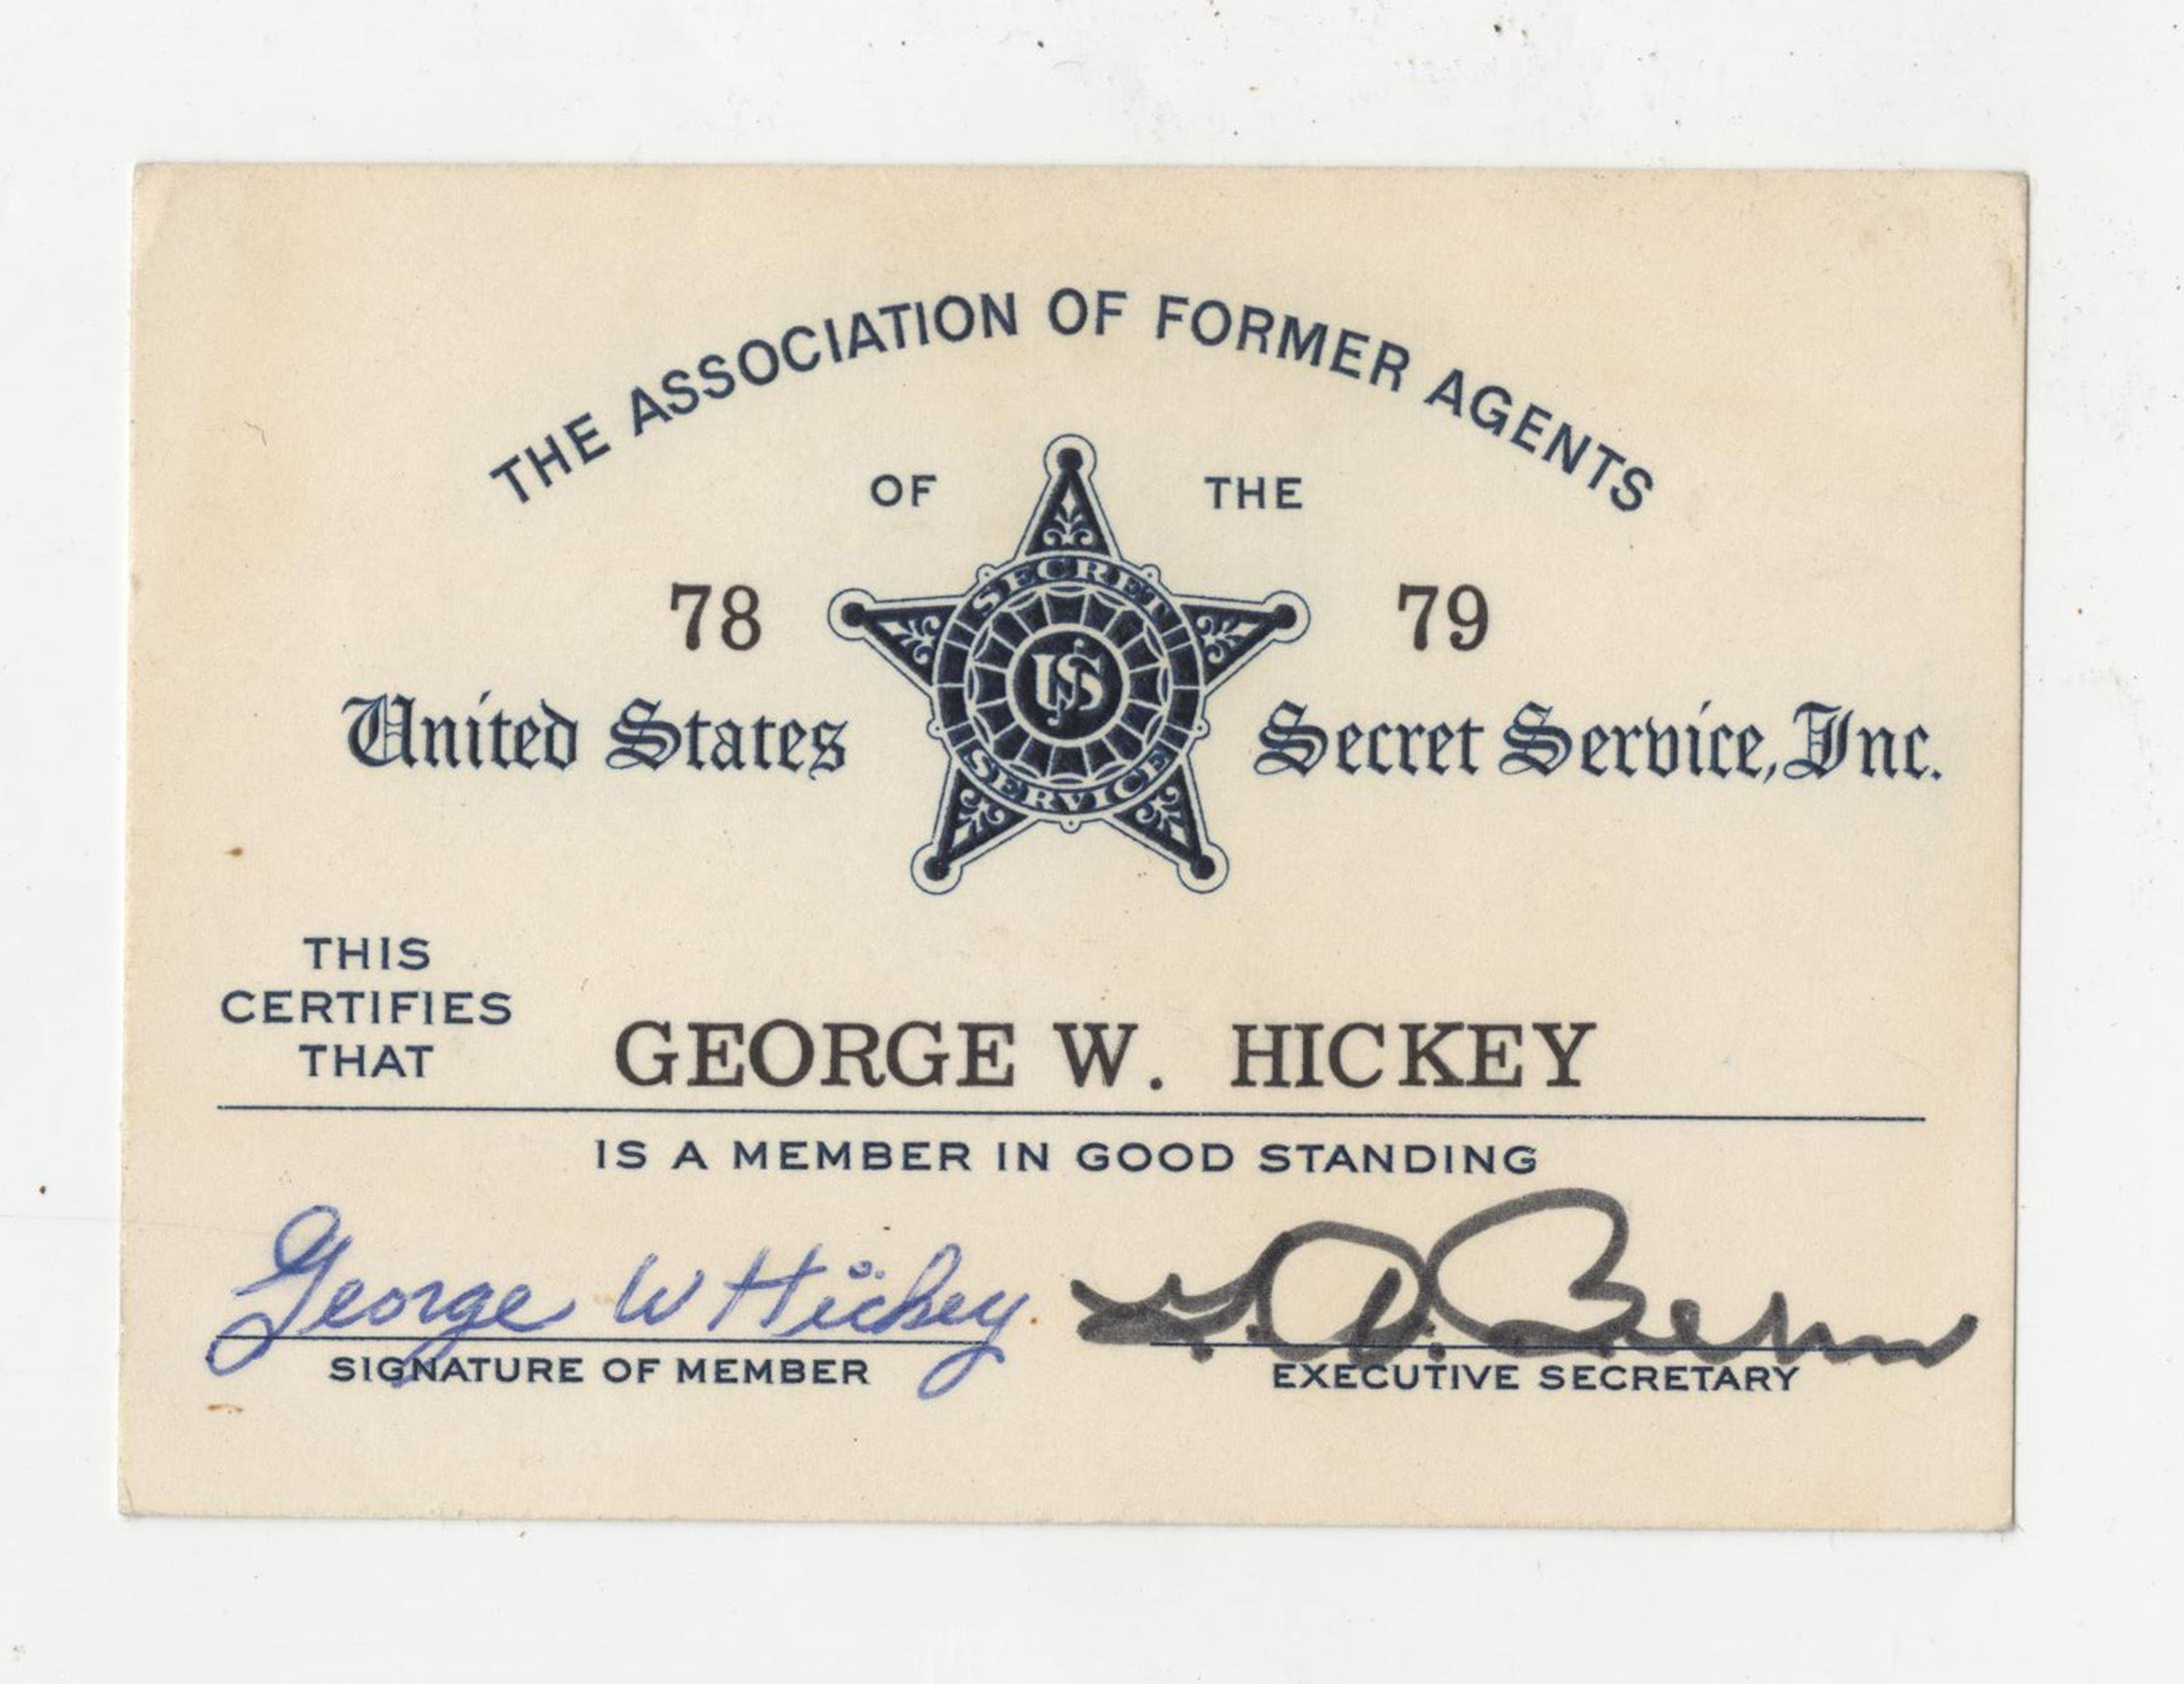 John F. Kennedy Secret Service Agent Card Signed by George Hickey